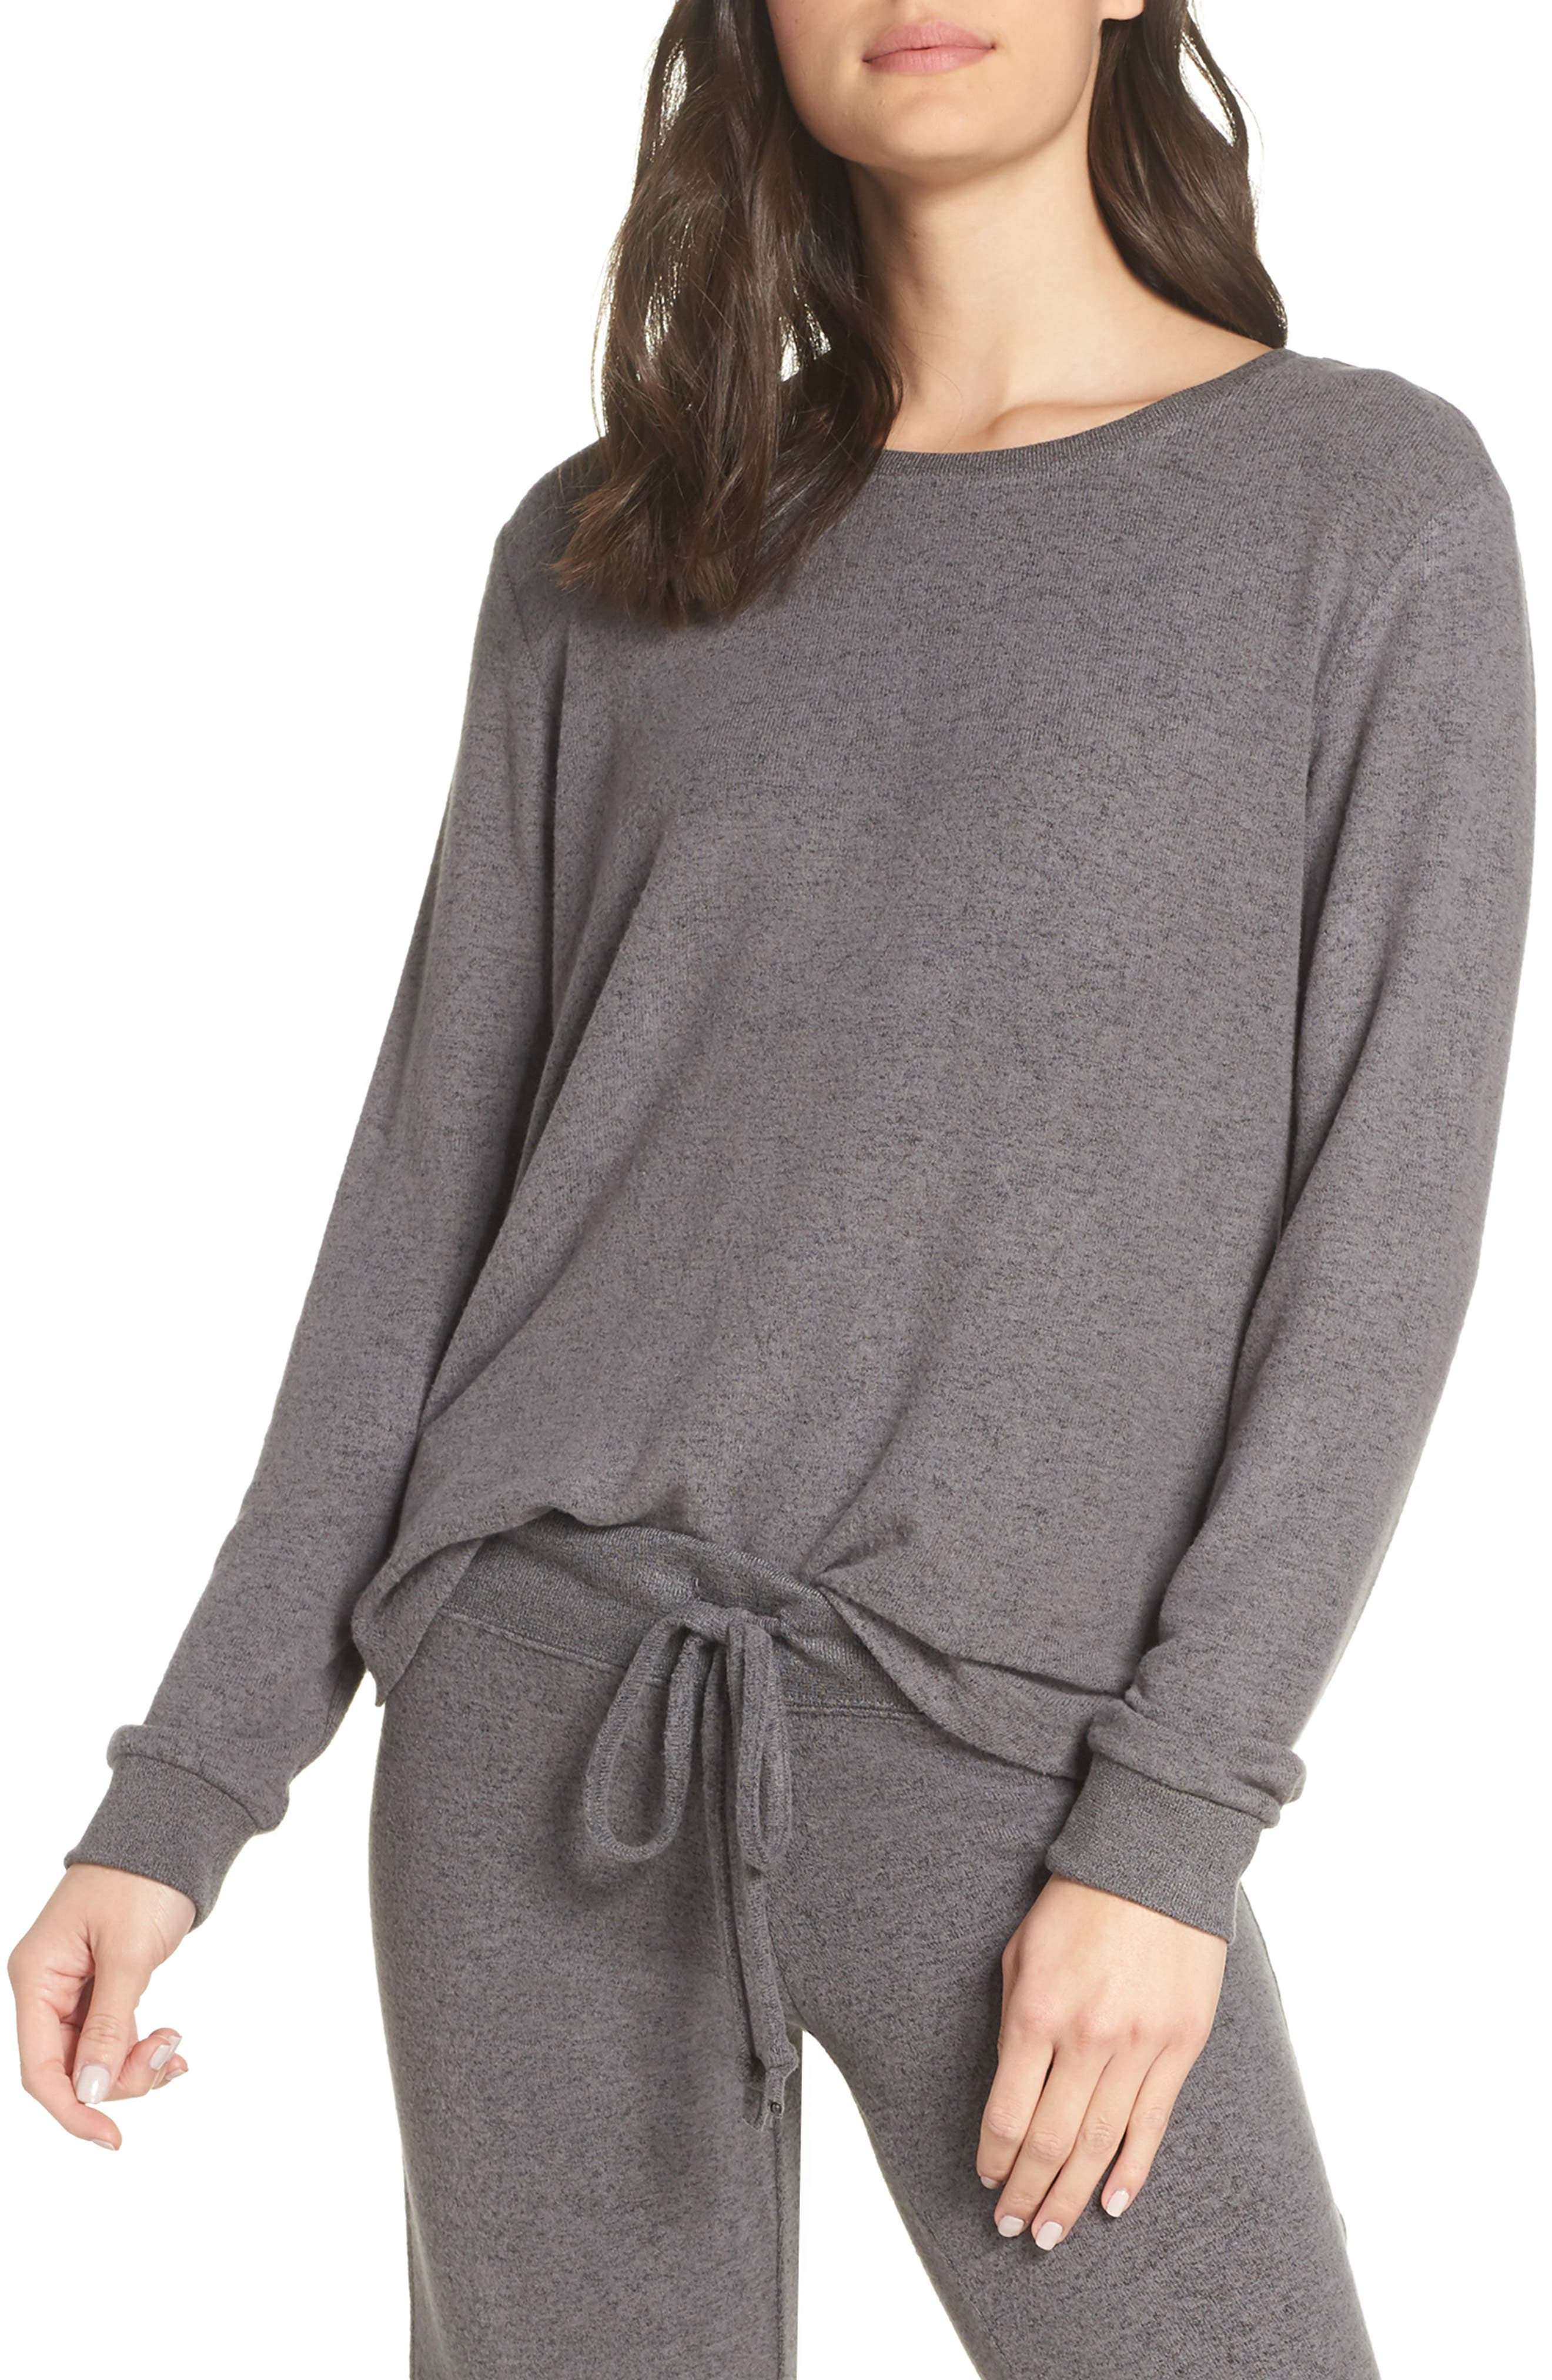 Too Cool Pullover,                             Main thumbnail 1, color,                             GREY PAVEMENT MARL